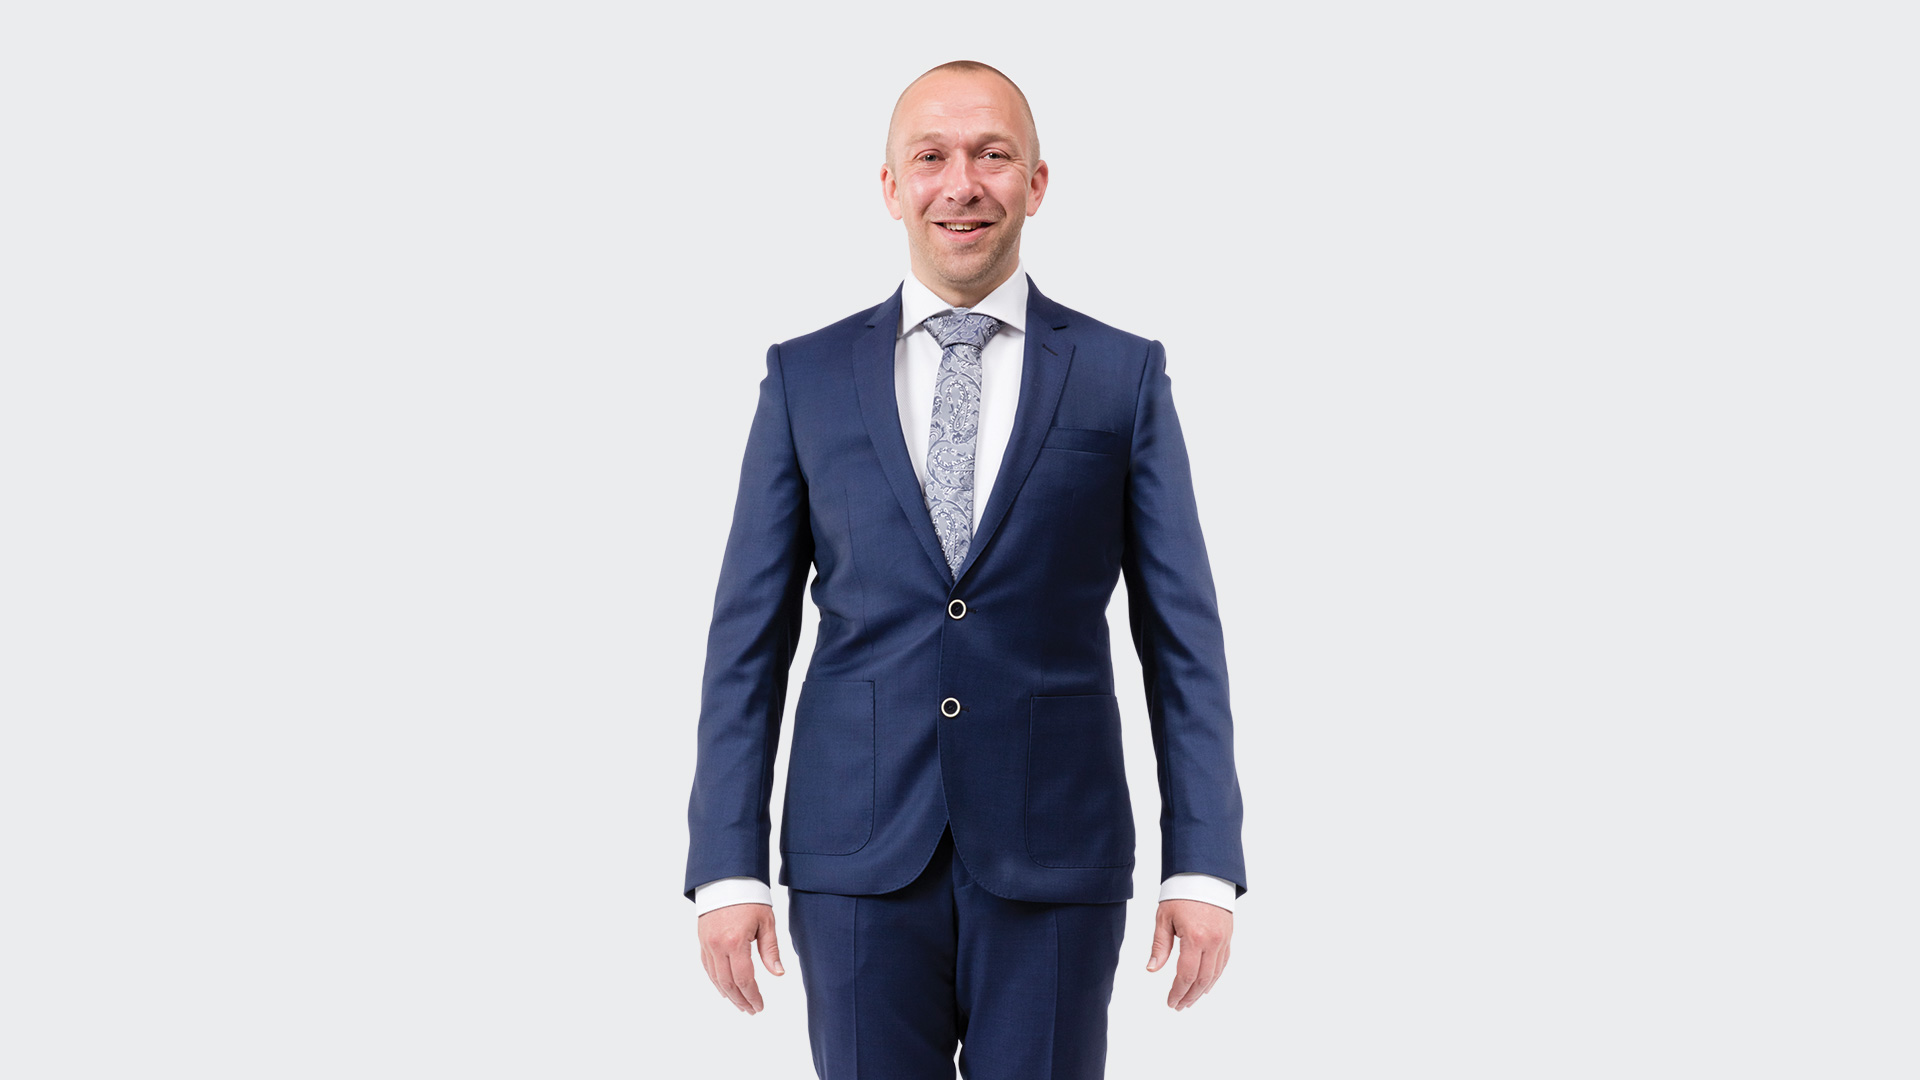 Martijn Krabben - Accountmanager